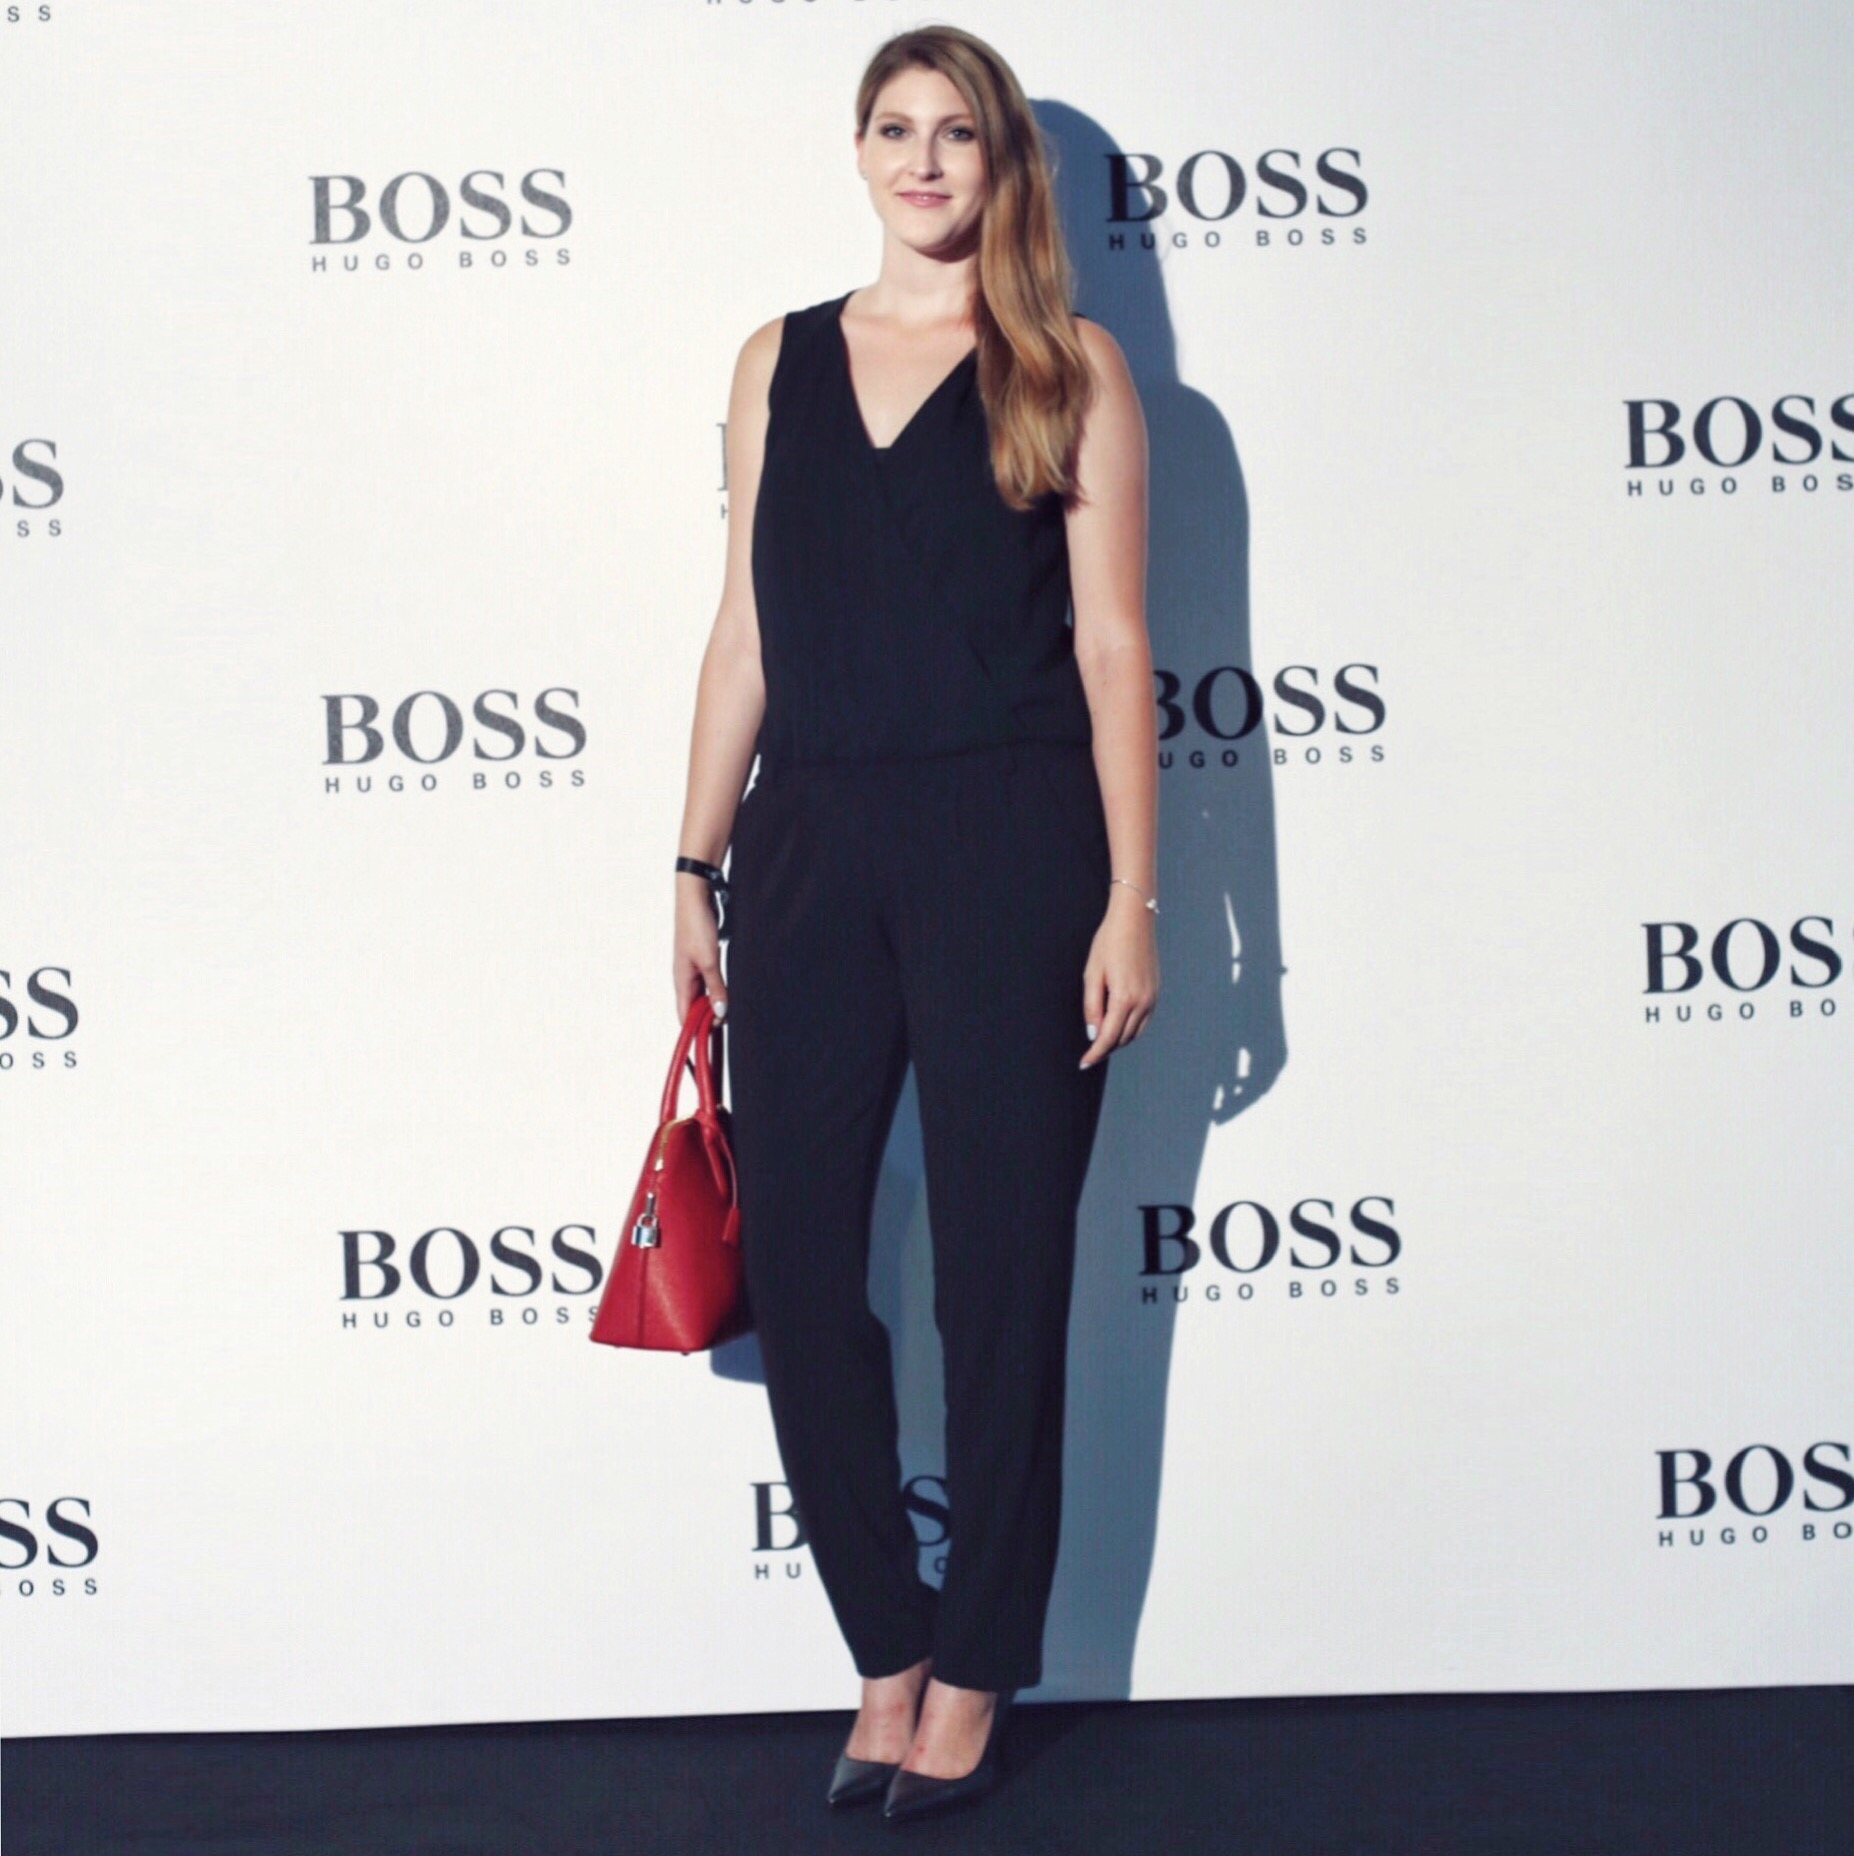 hugo_boss_reopening_party6.JPG